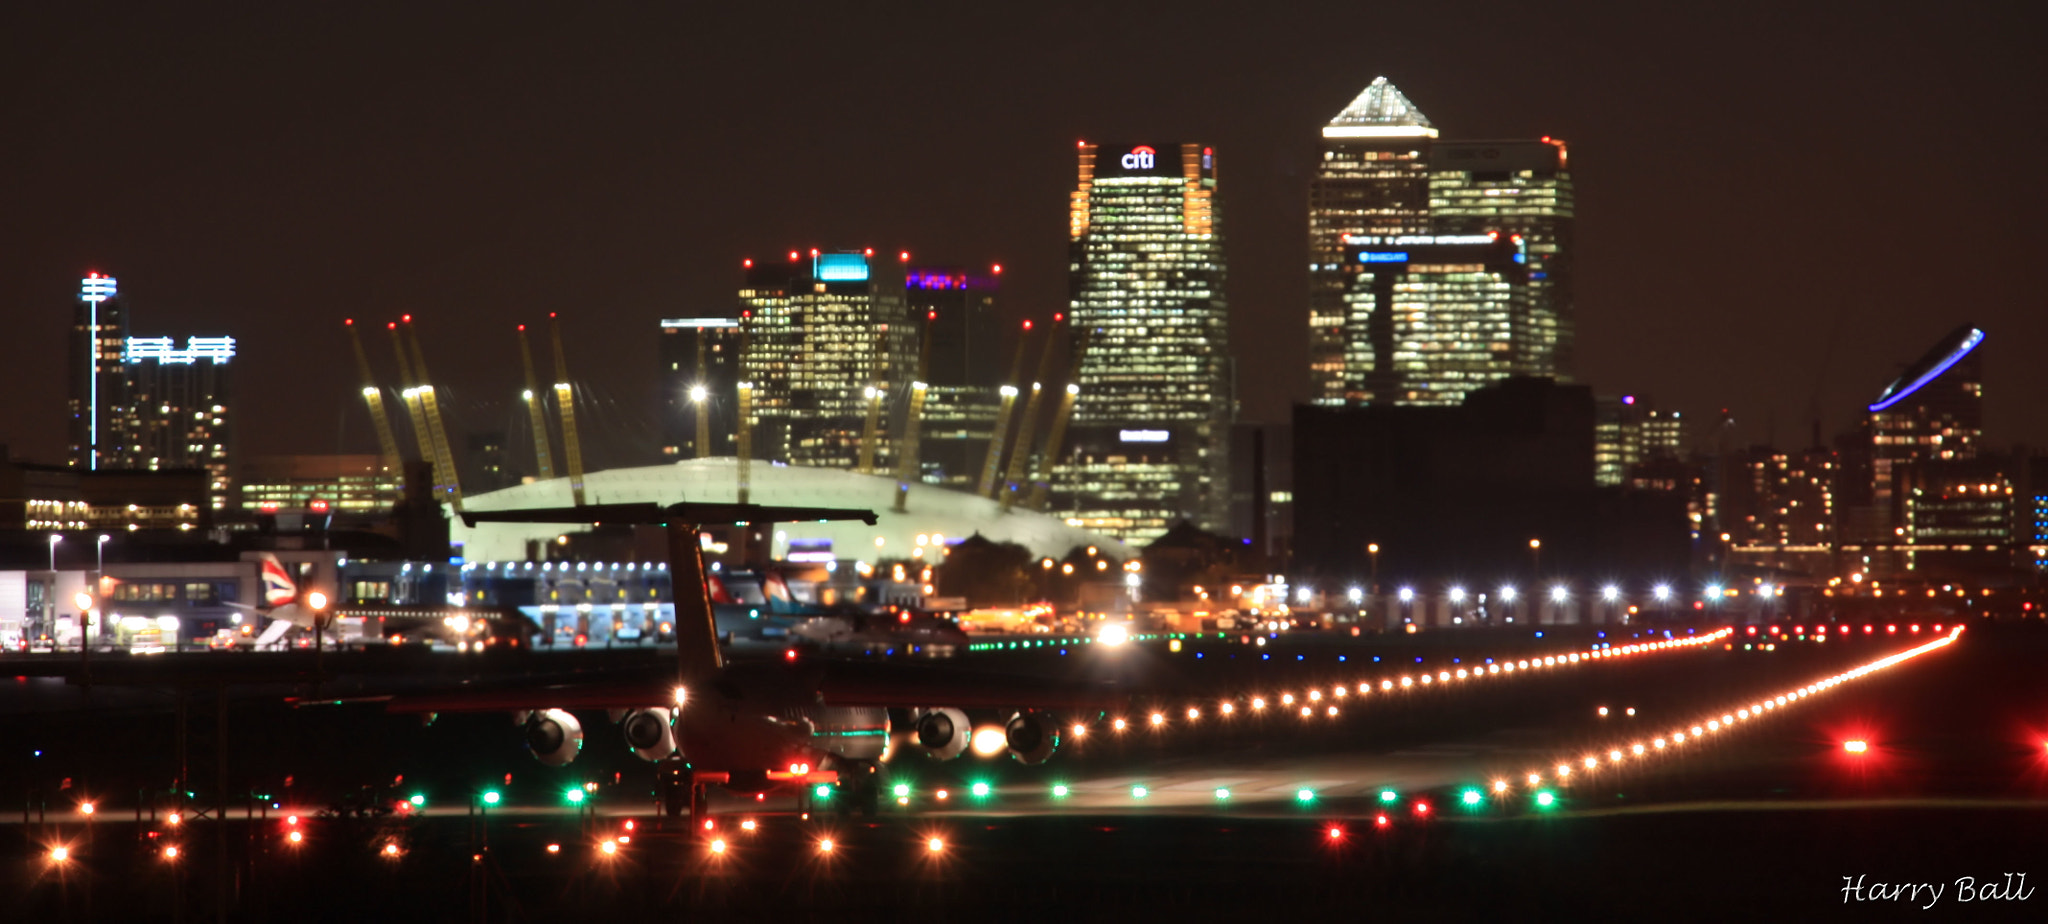 Photograph London City Airport by Harry Ball on 500px